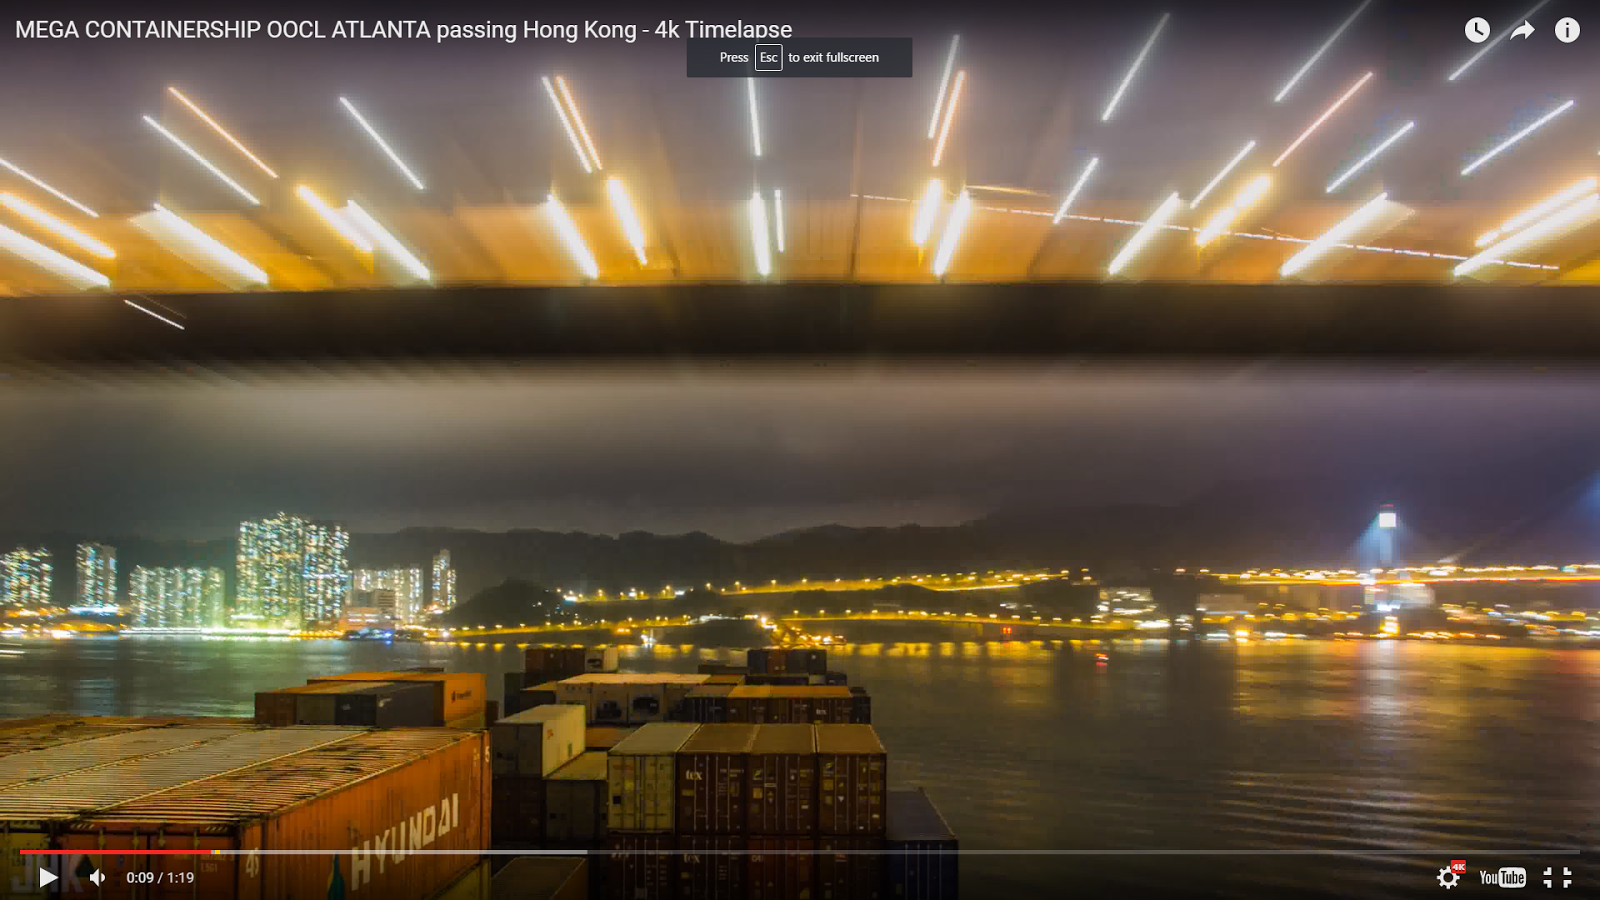 VIDEO: Containership OOCL ATLANTA Passing Hong Kong in 4K HD